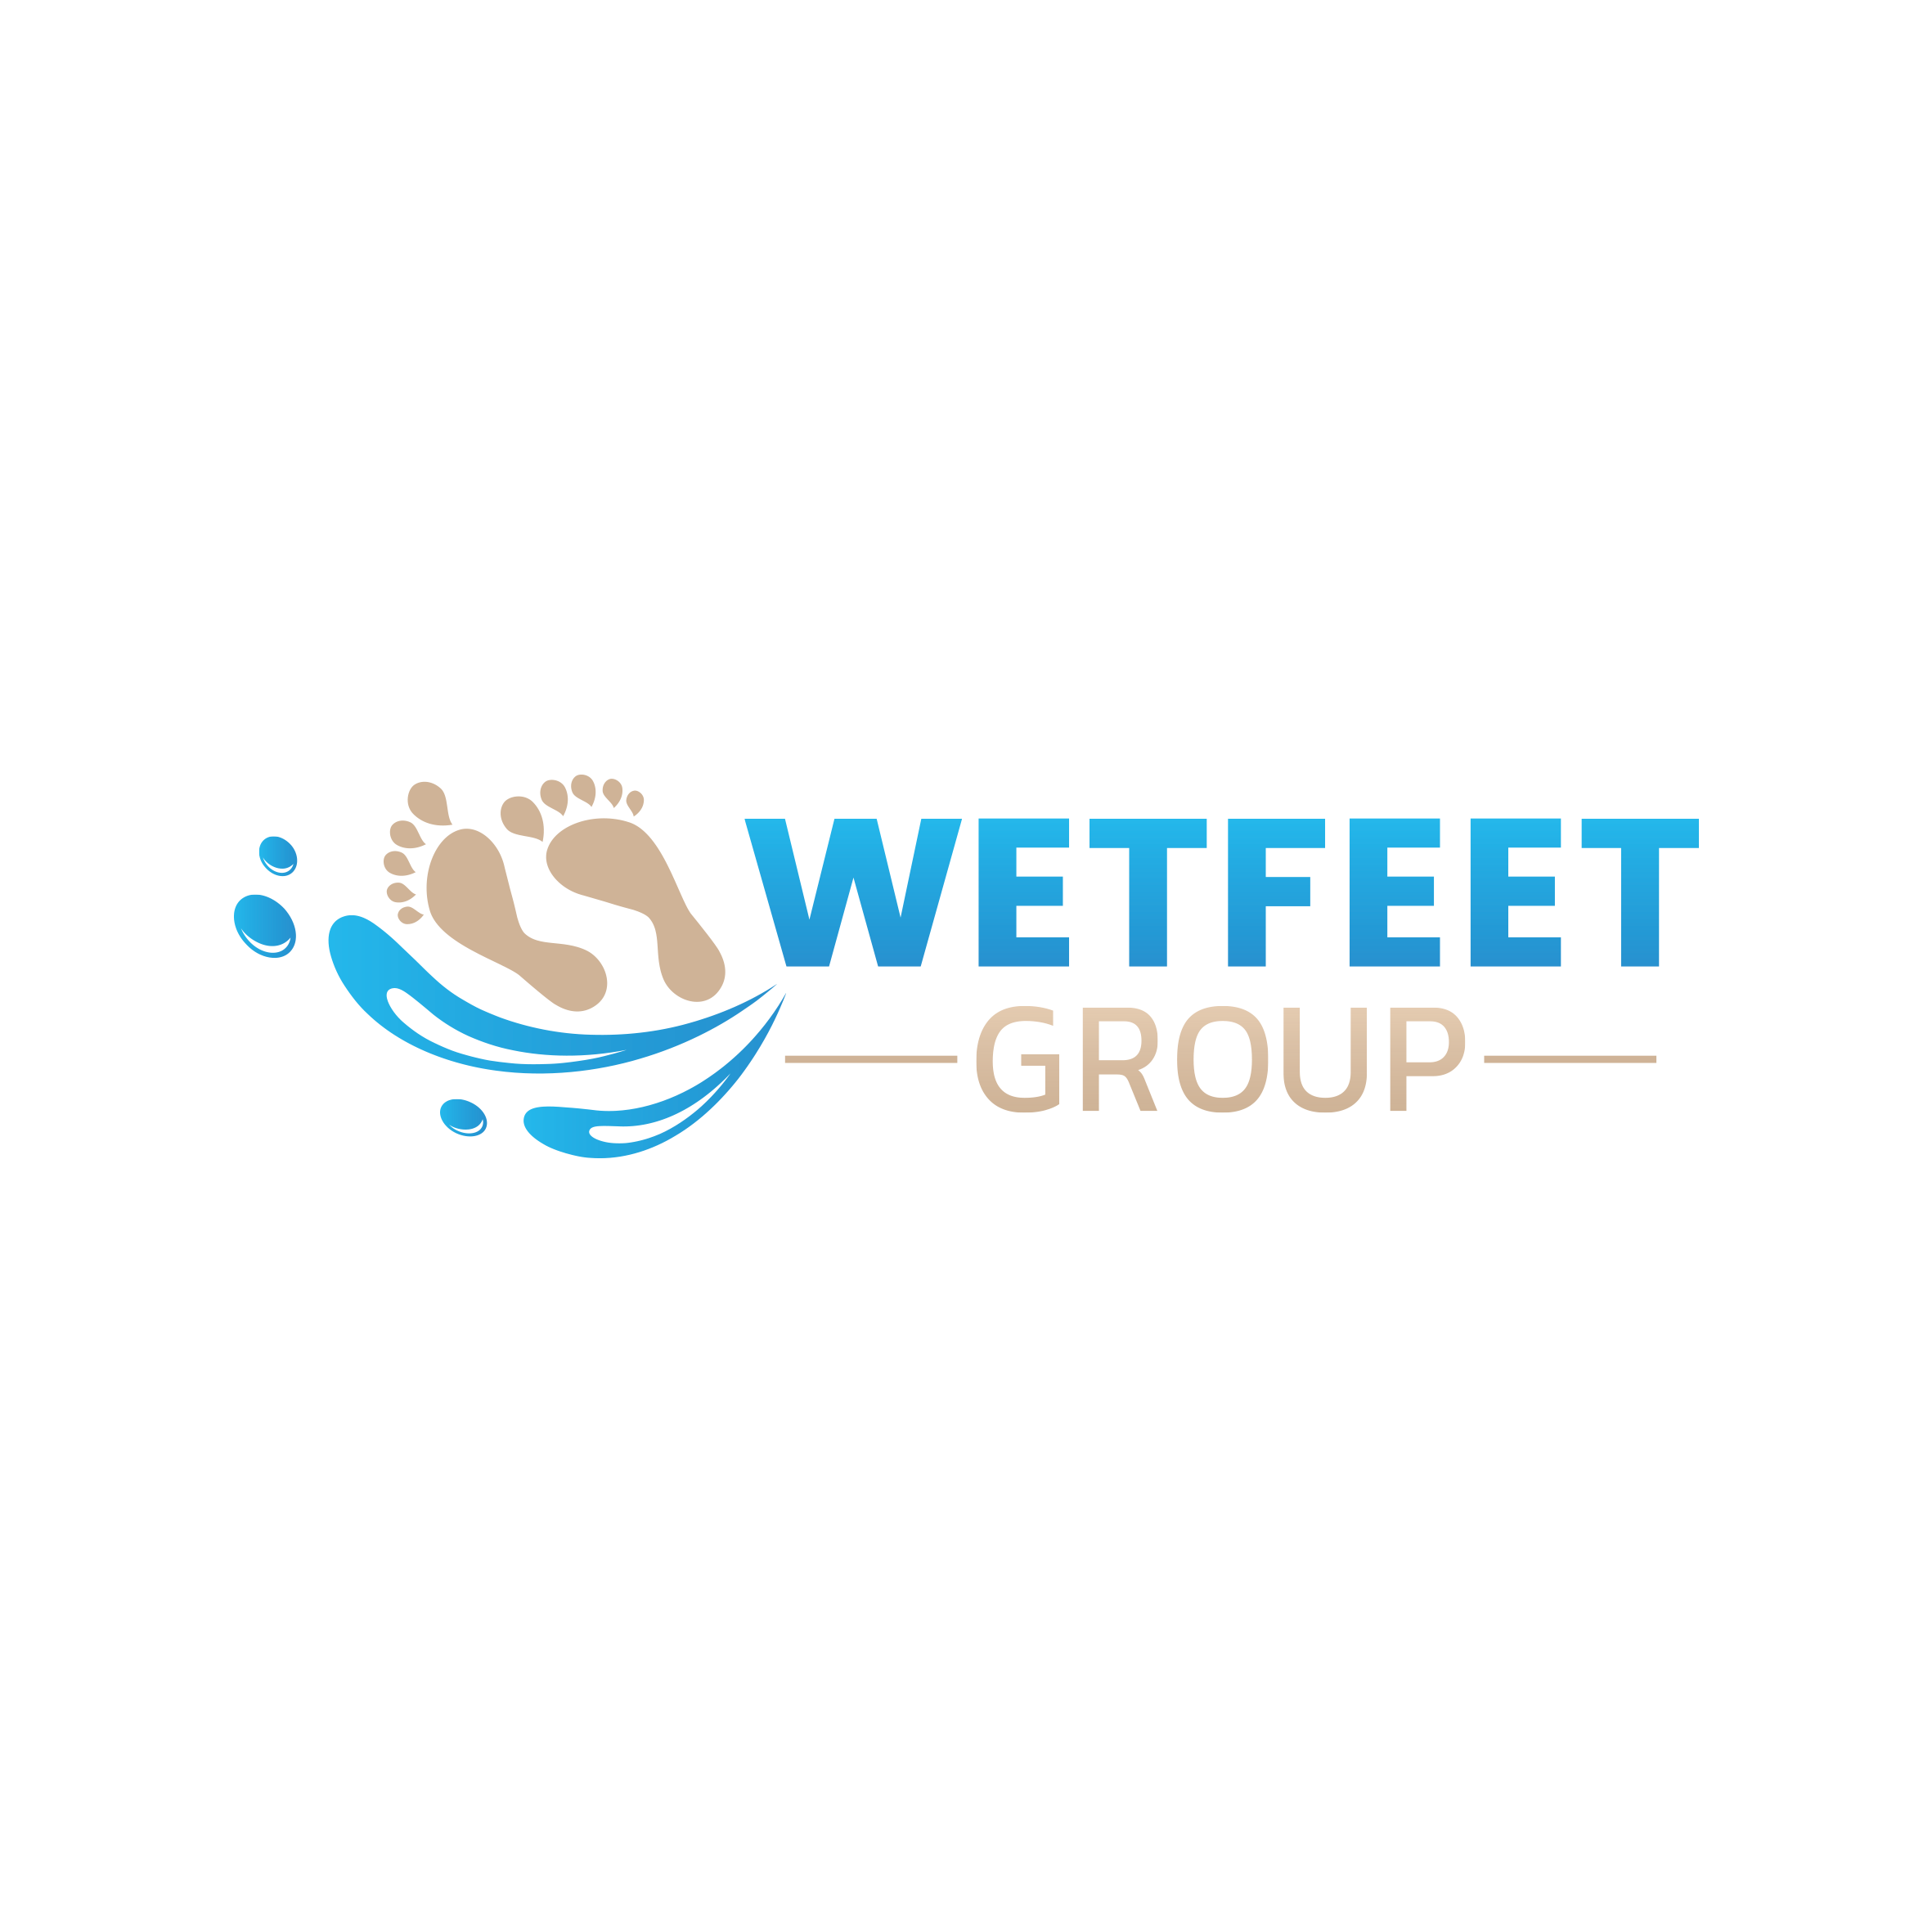 Design a footprints on the beach inspired logo for WETFEET Group